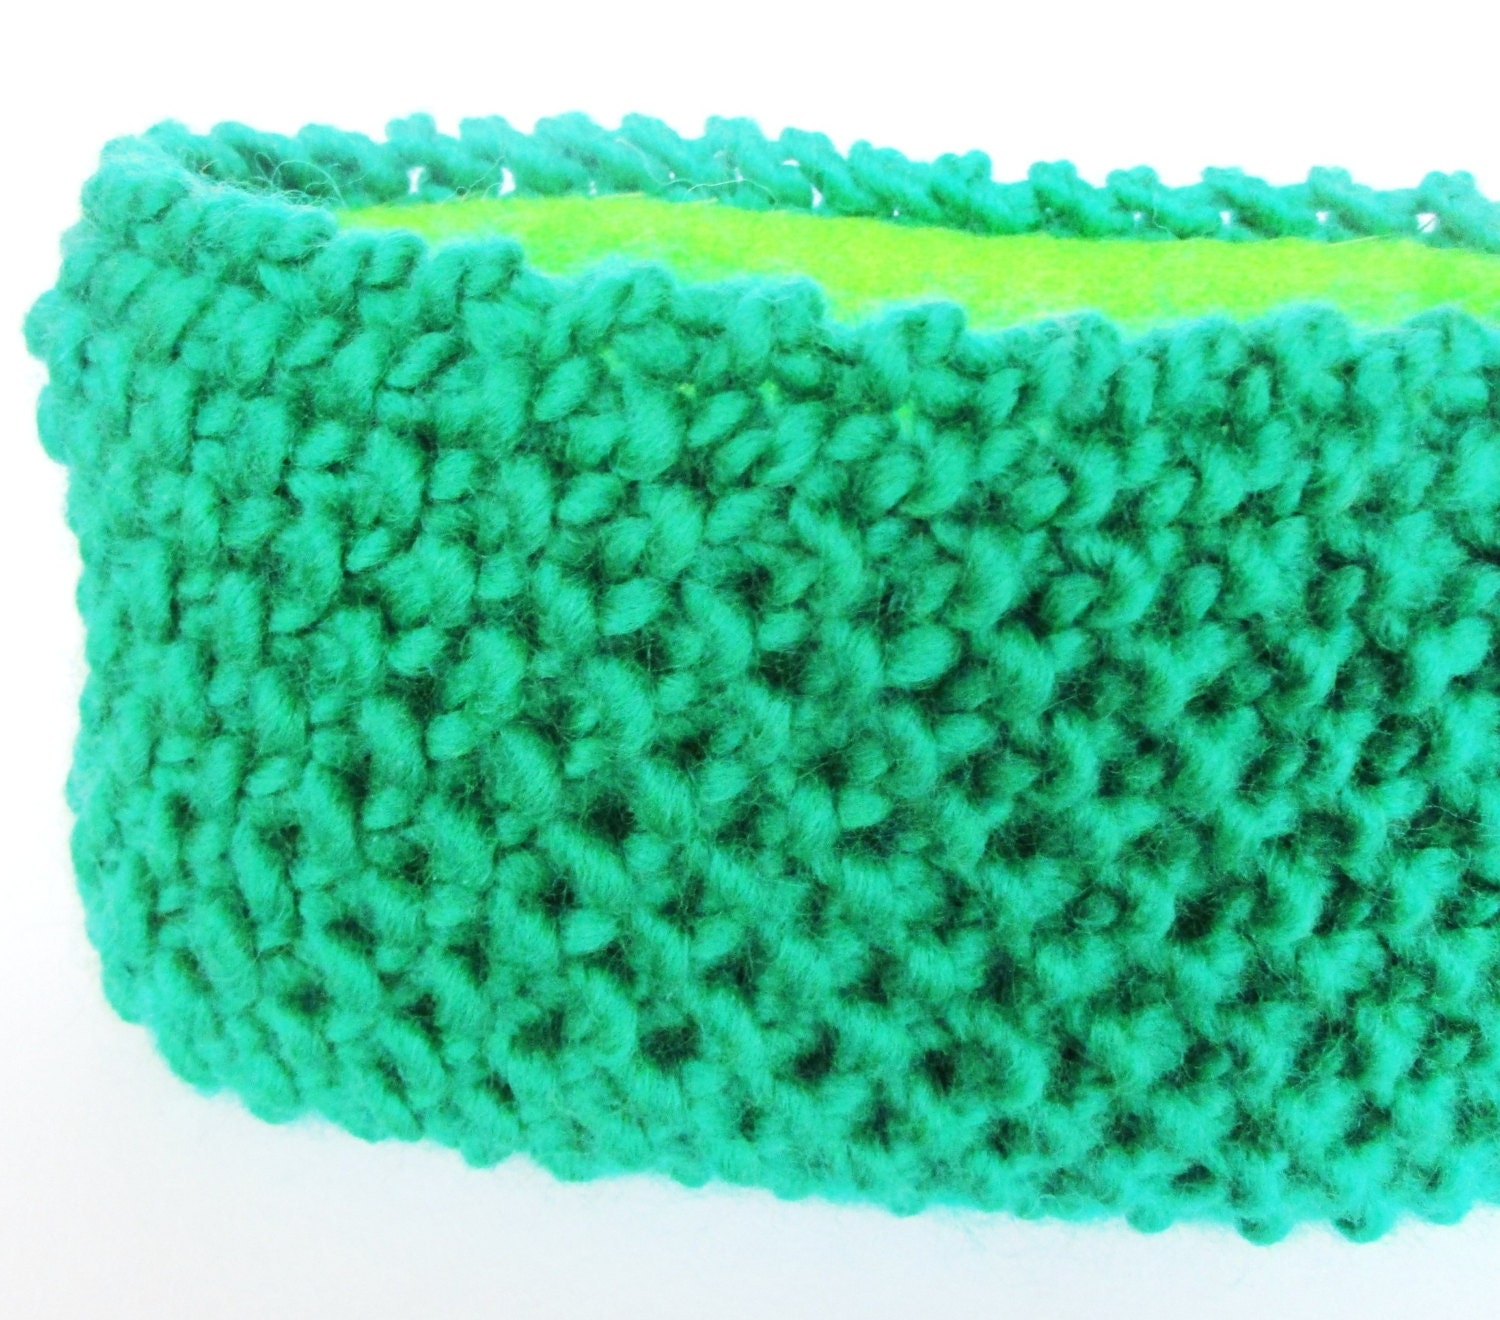 Knitting Pattern Ski Headband : Green knitted headband fleece lined ski accessory by ...